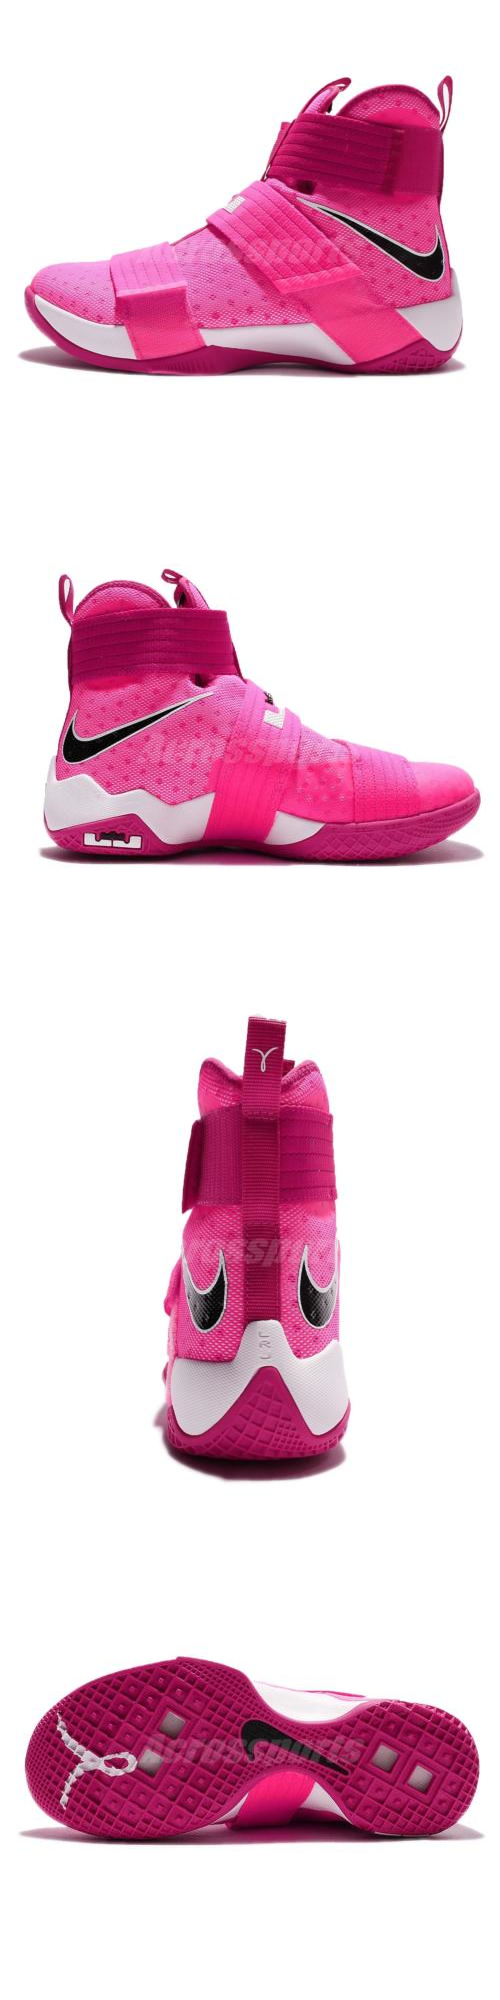 1ecd1dfe809 Basketball  Nike Lebron Soldier 10 Ep X James Kay Yow Breast Cancer Basketball  844375-606 BUY IT NOW ONLY   159.0